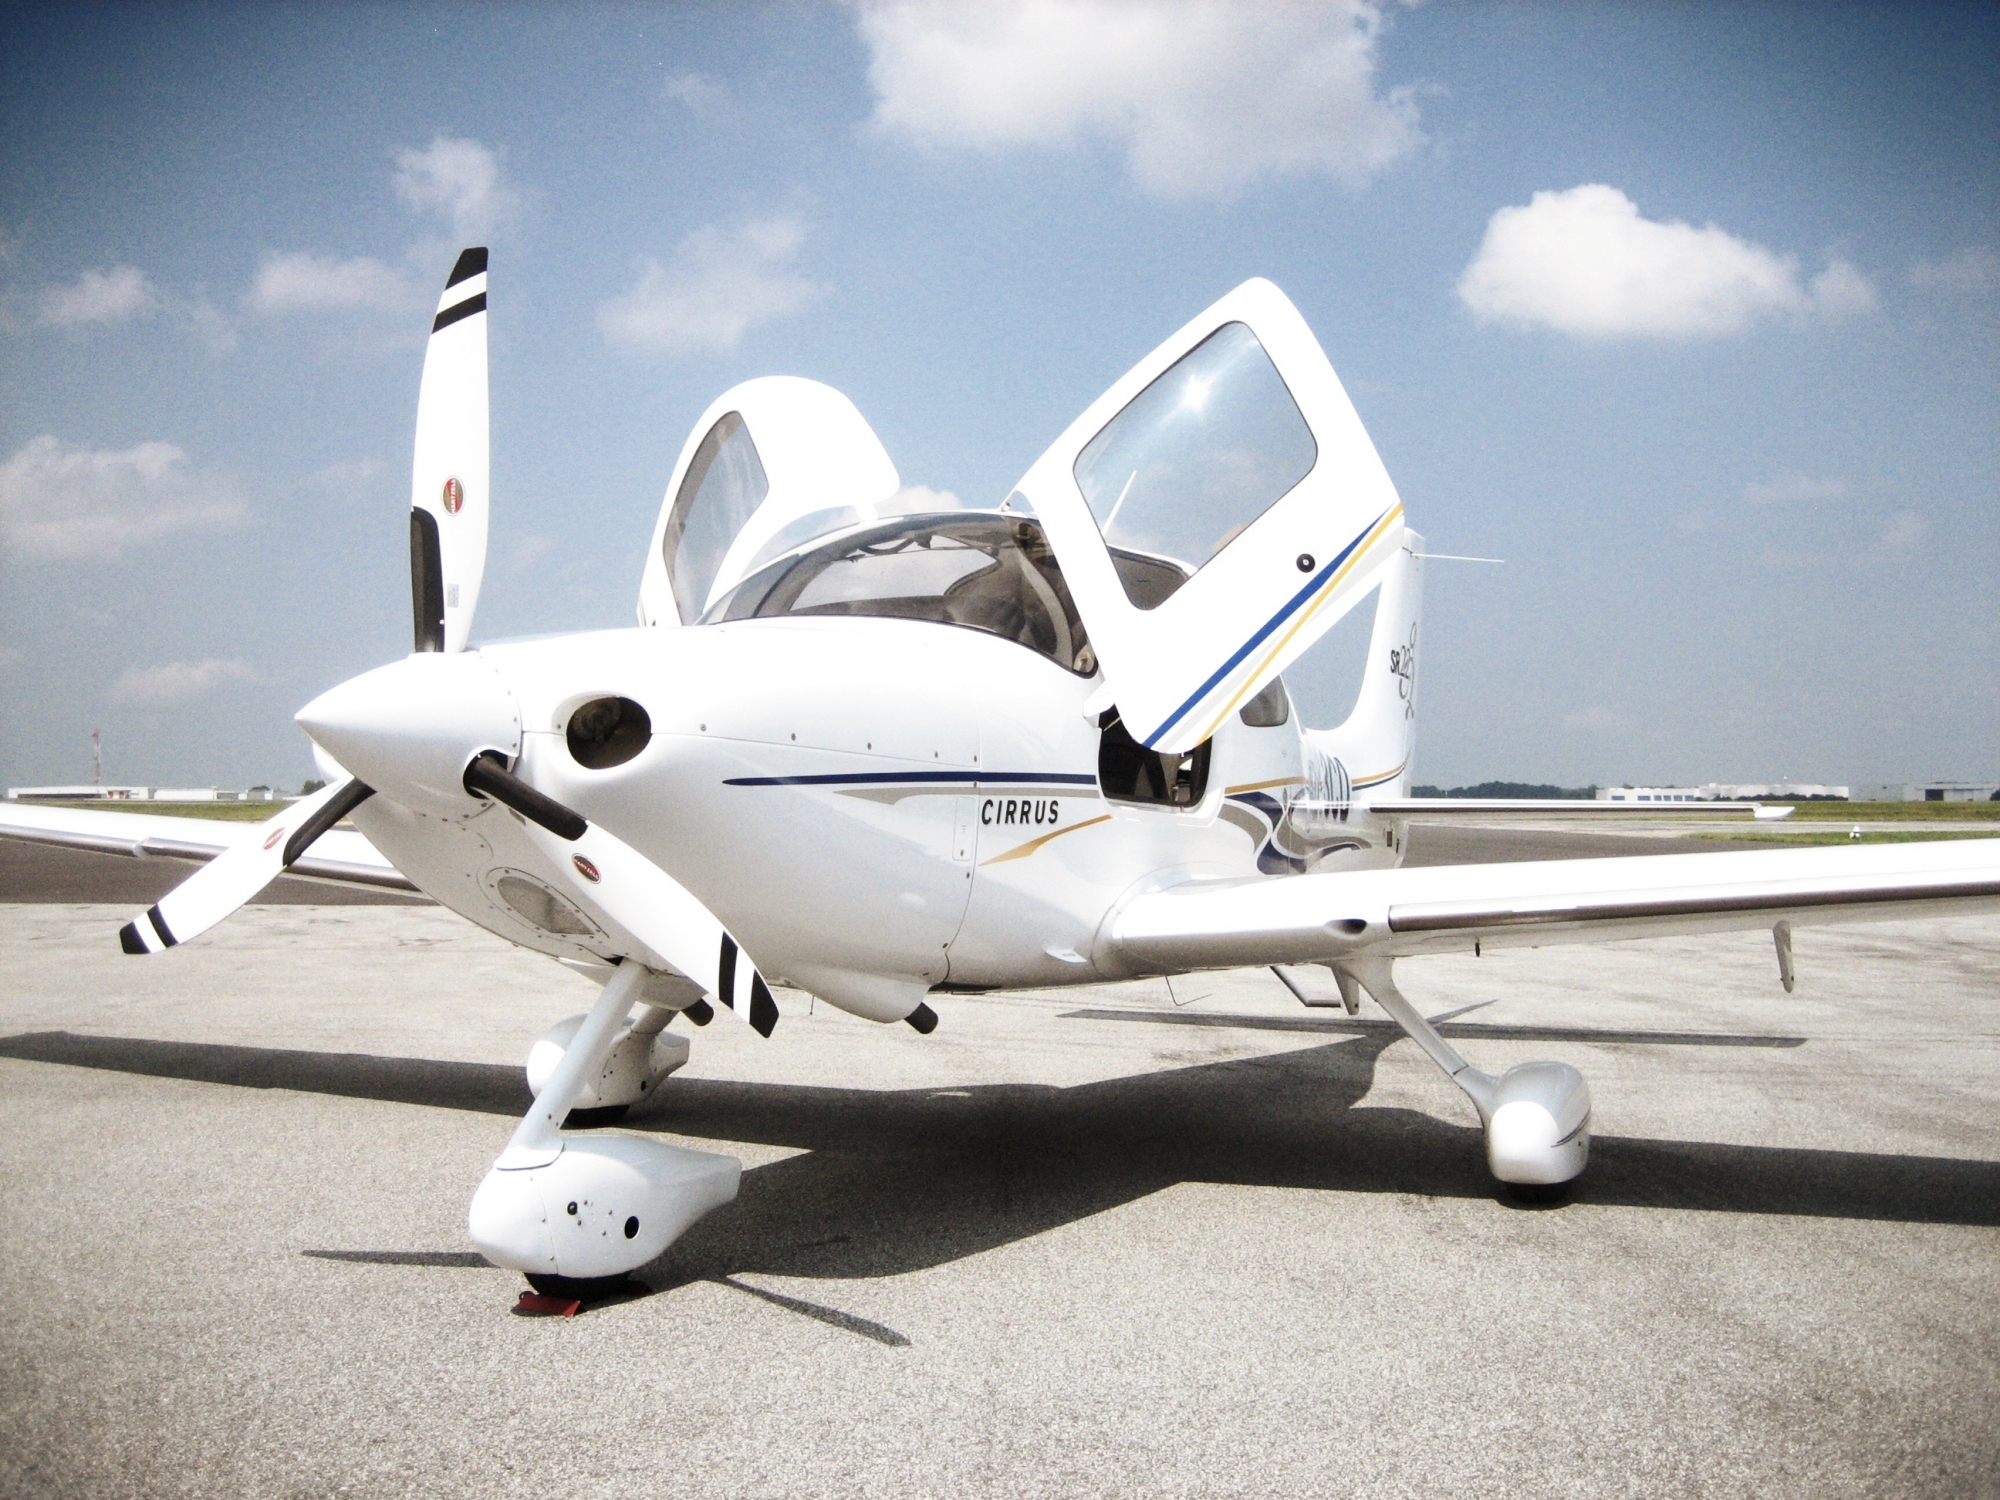 We are an Authorized Cirrus Service Center - For all of your maintenance needs and upgrades for your cirrus aircraft, we proudly